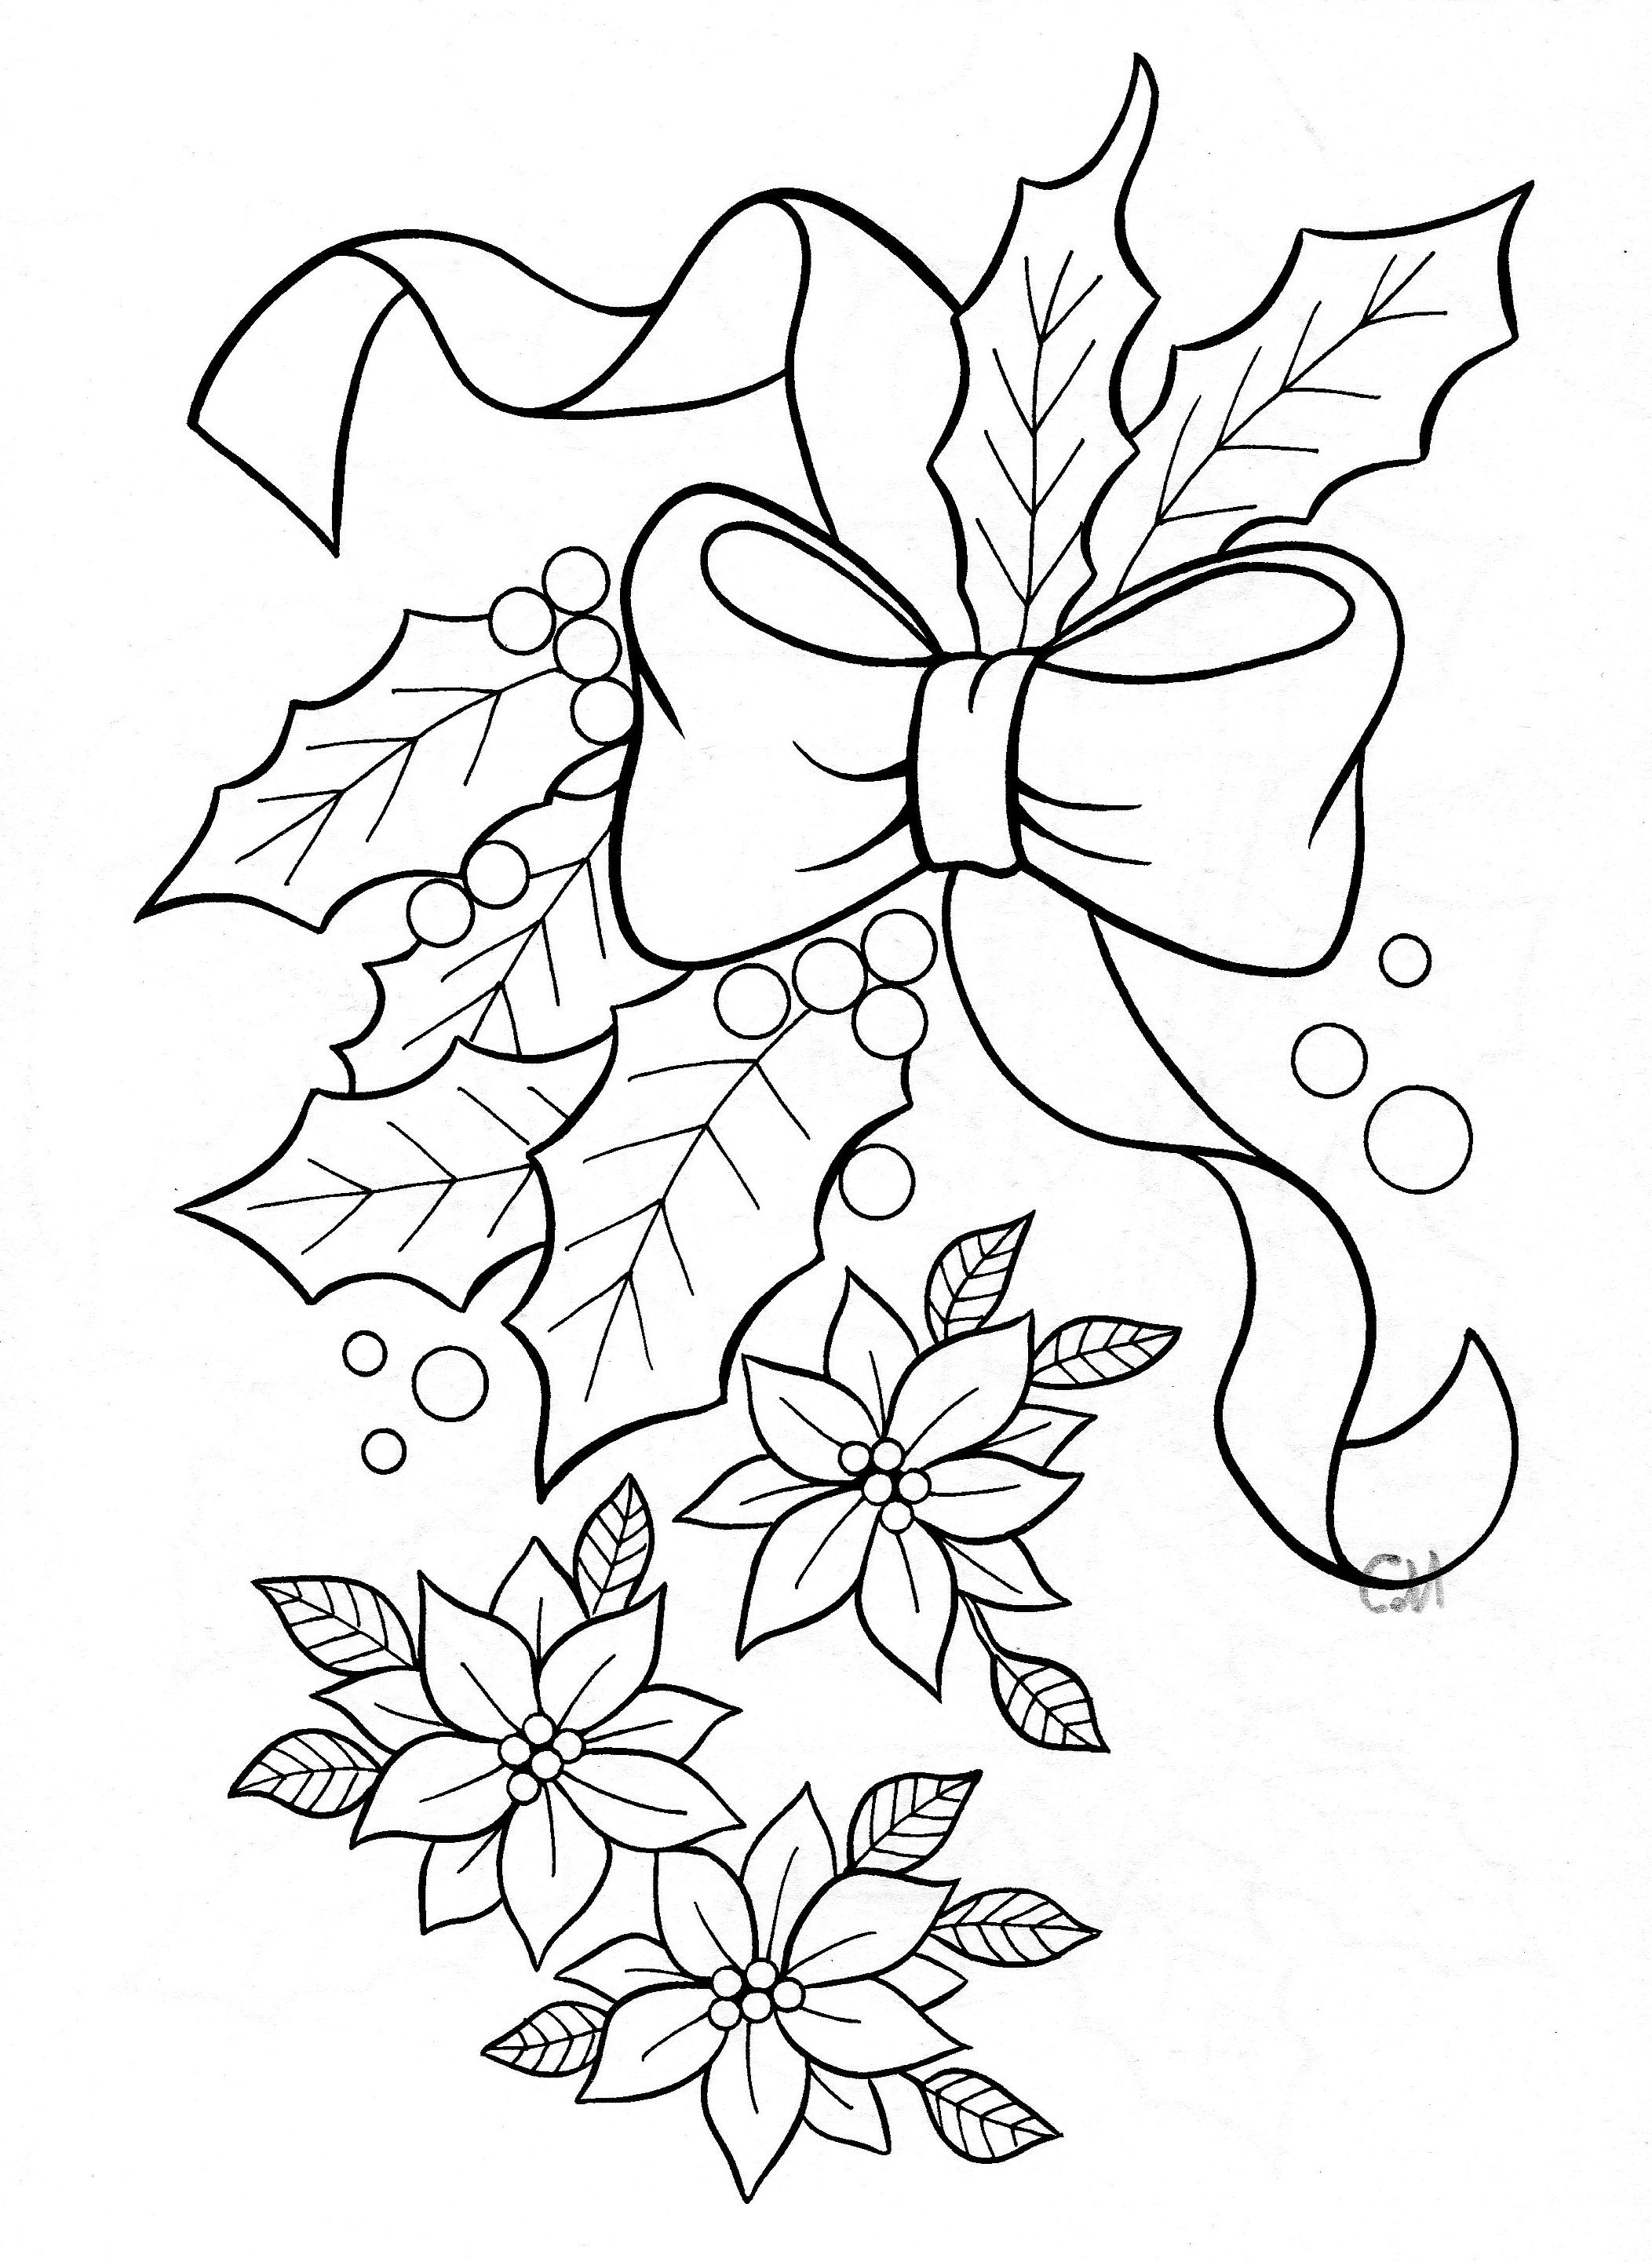 coloring and doodle art u0026 drawings art u0026 drawings